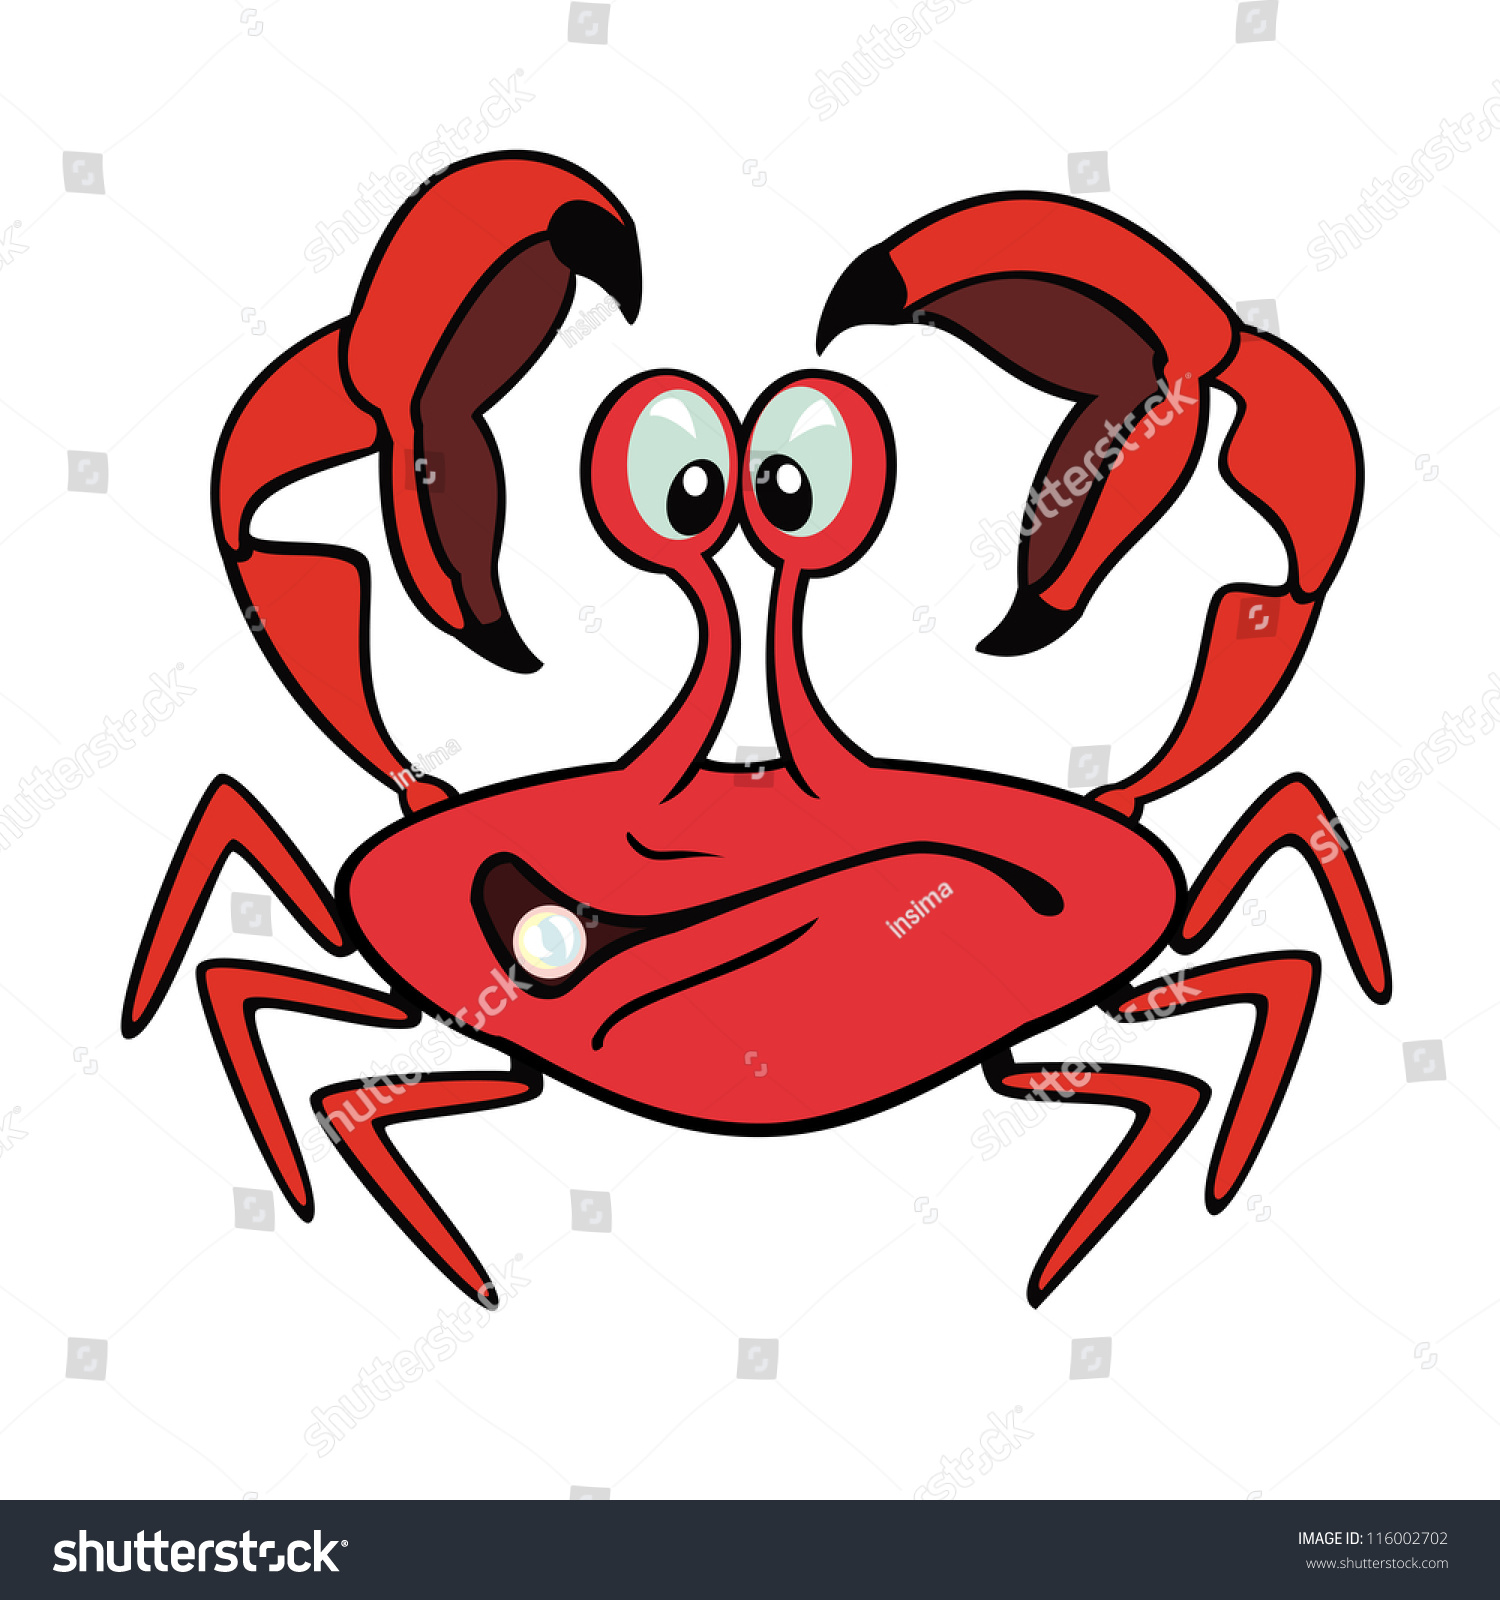 Crab Drawing For Kids at GetDrawings.com | Free for personal use ...